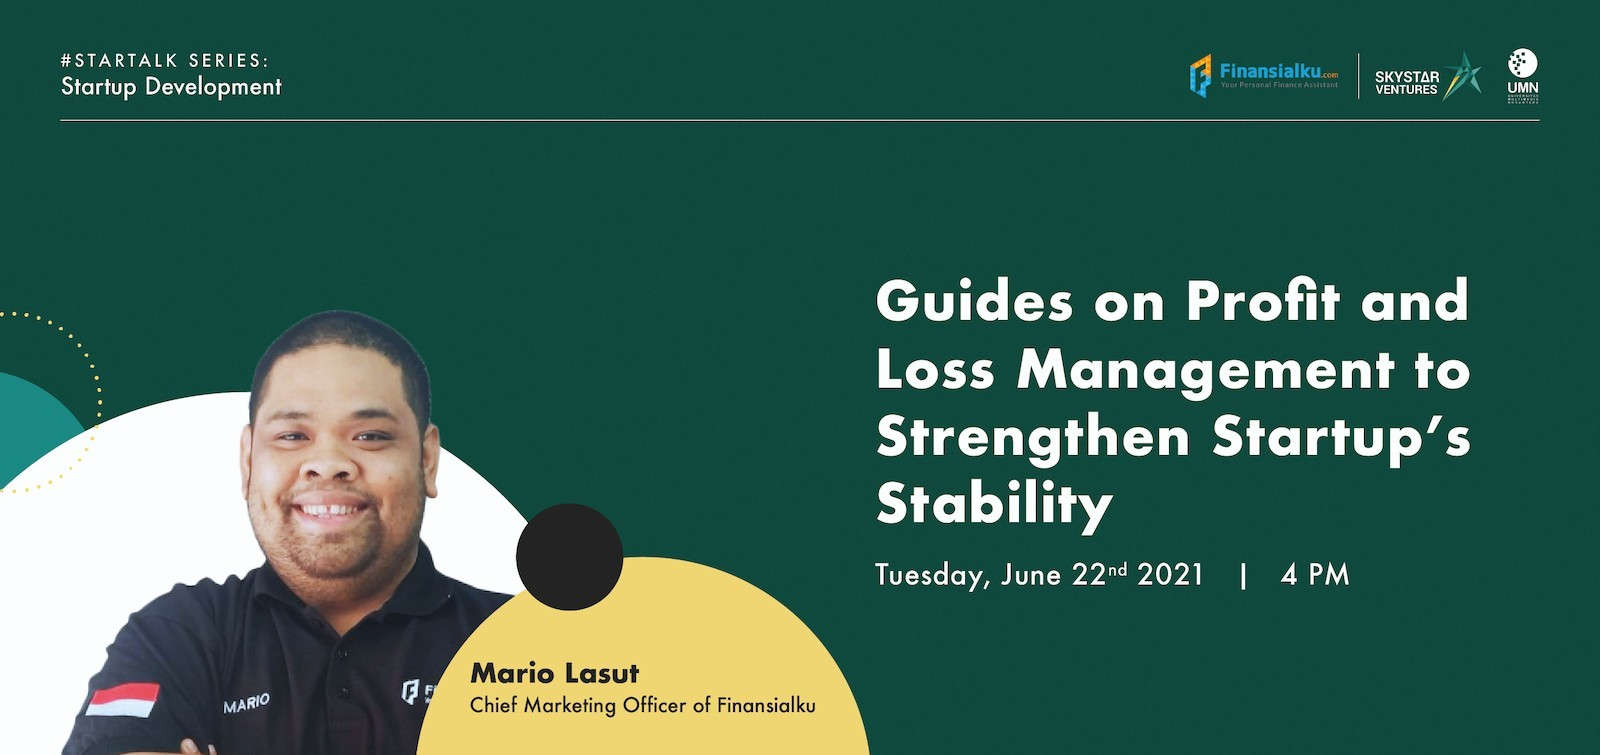 STARTALK - Guides on Profit and Loss Management to Strengthen Startup's Stability